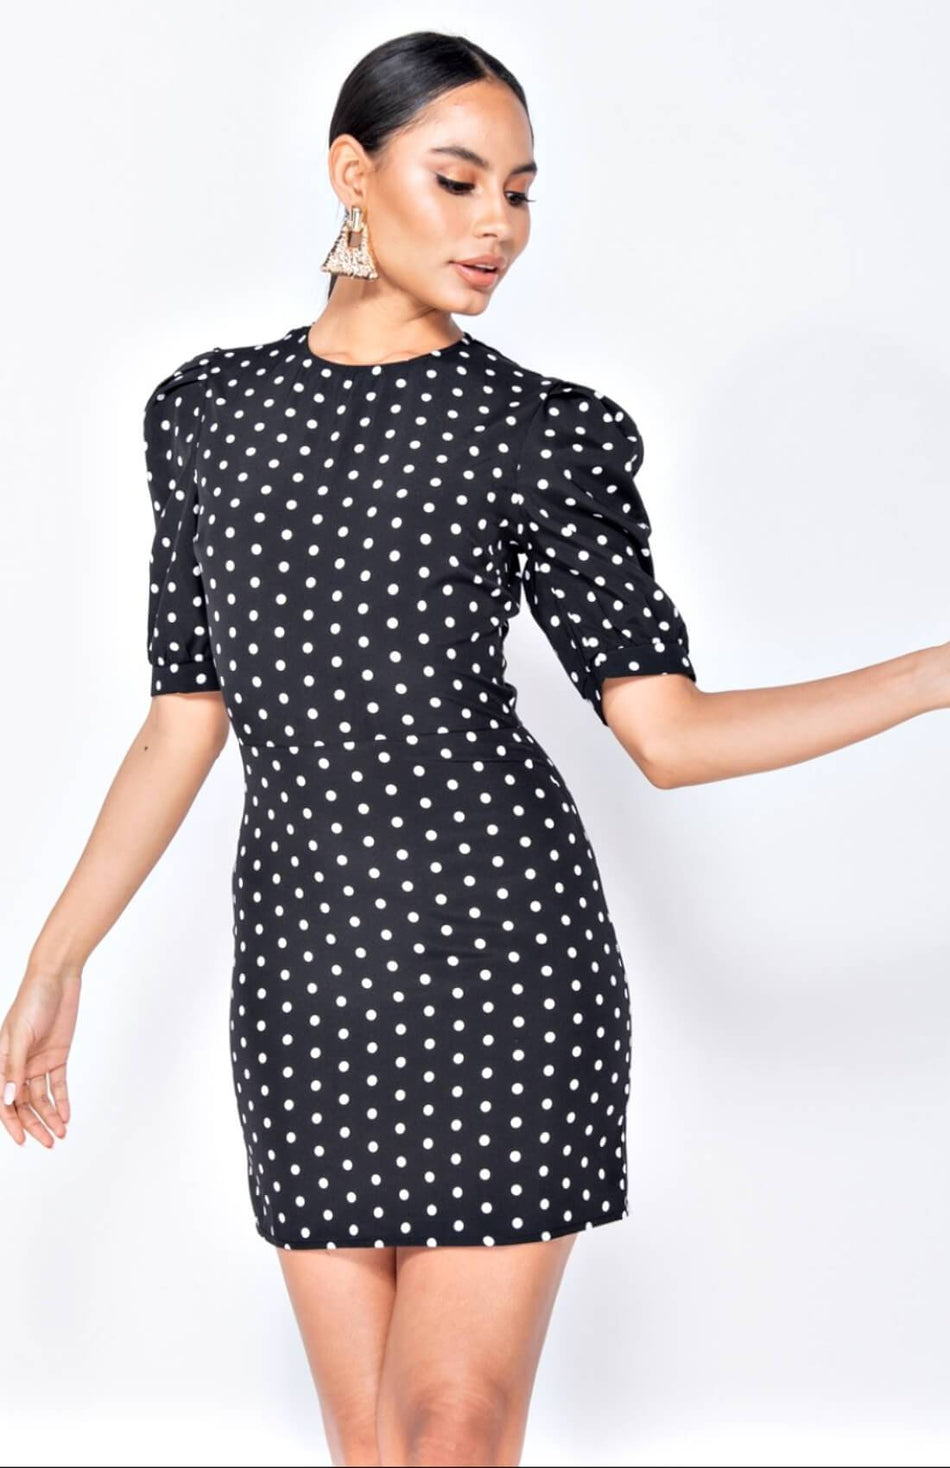 Black Polka Dot Puff Sleeve Mini Dress